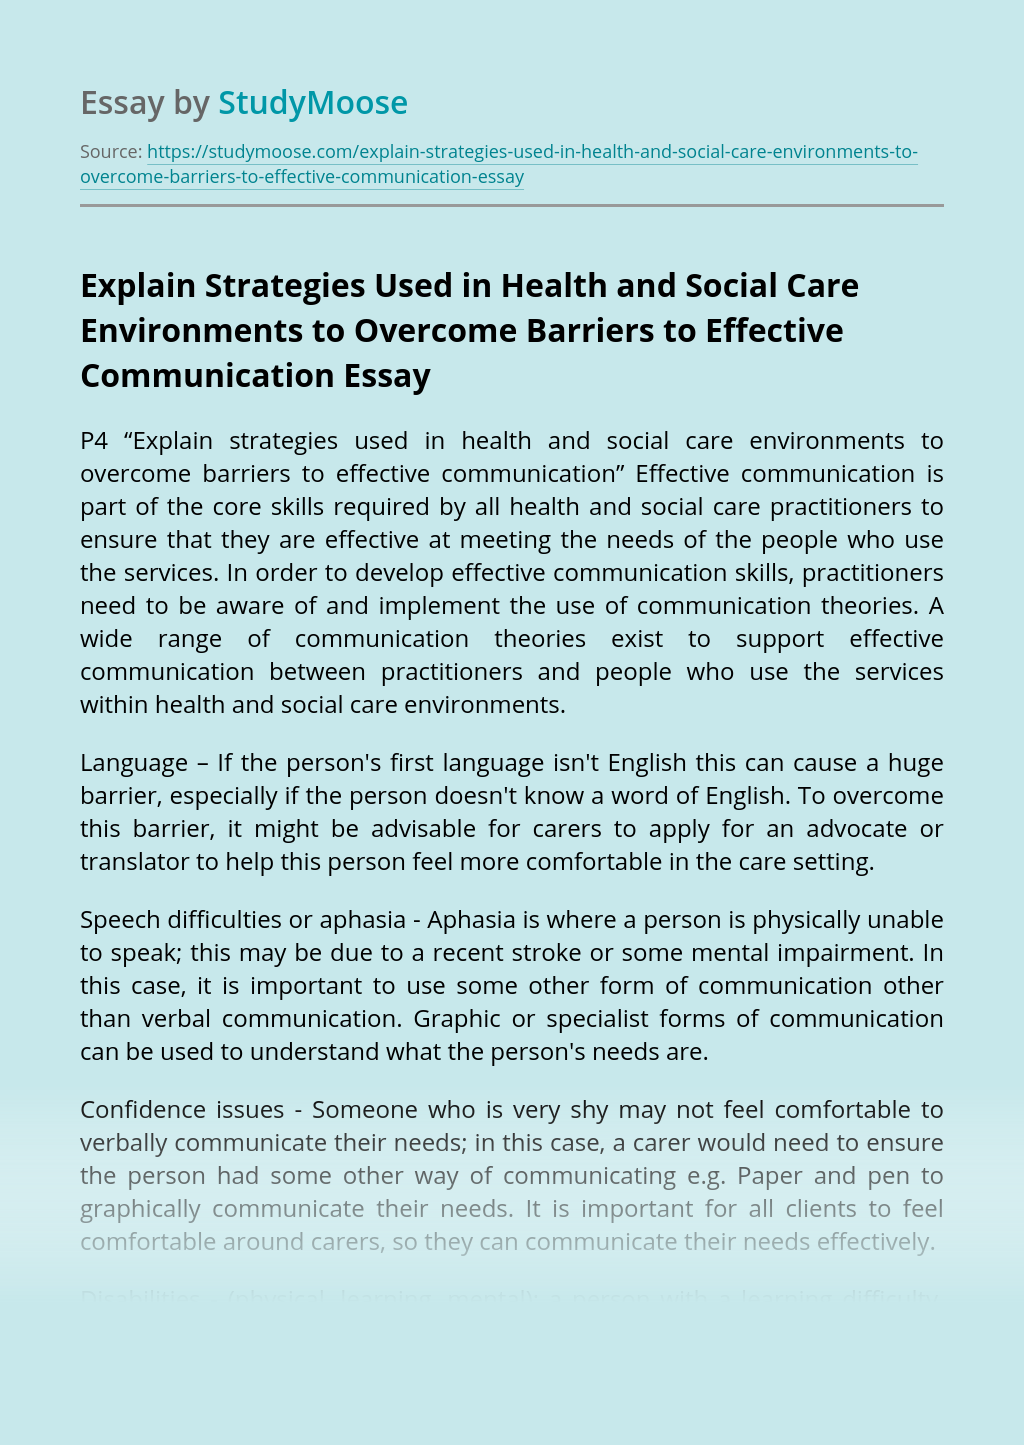 Explain Strategies Used in Health and Social Care Environments to Overcome Barriers to Effective Communication